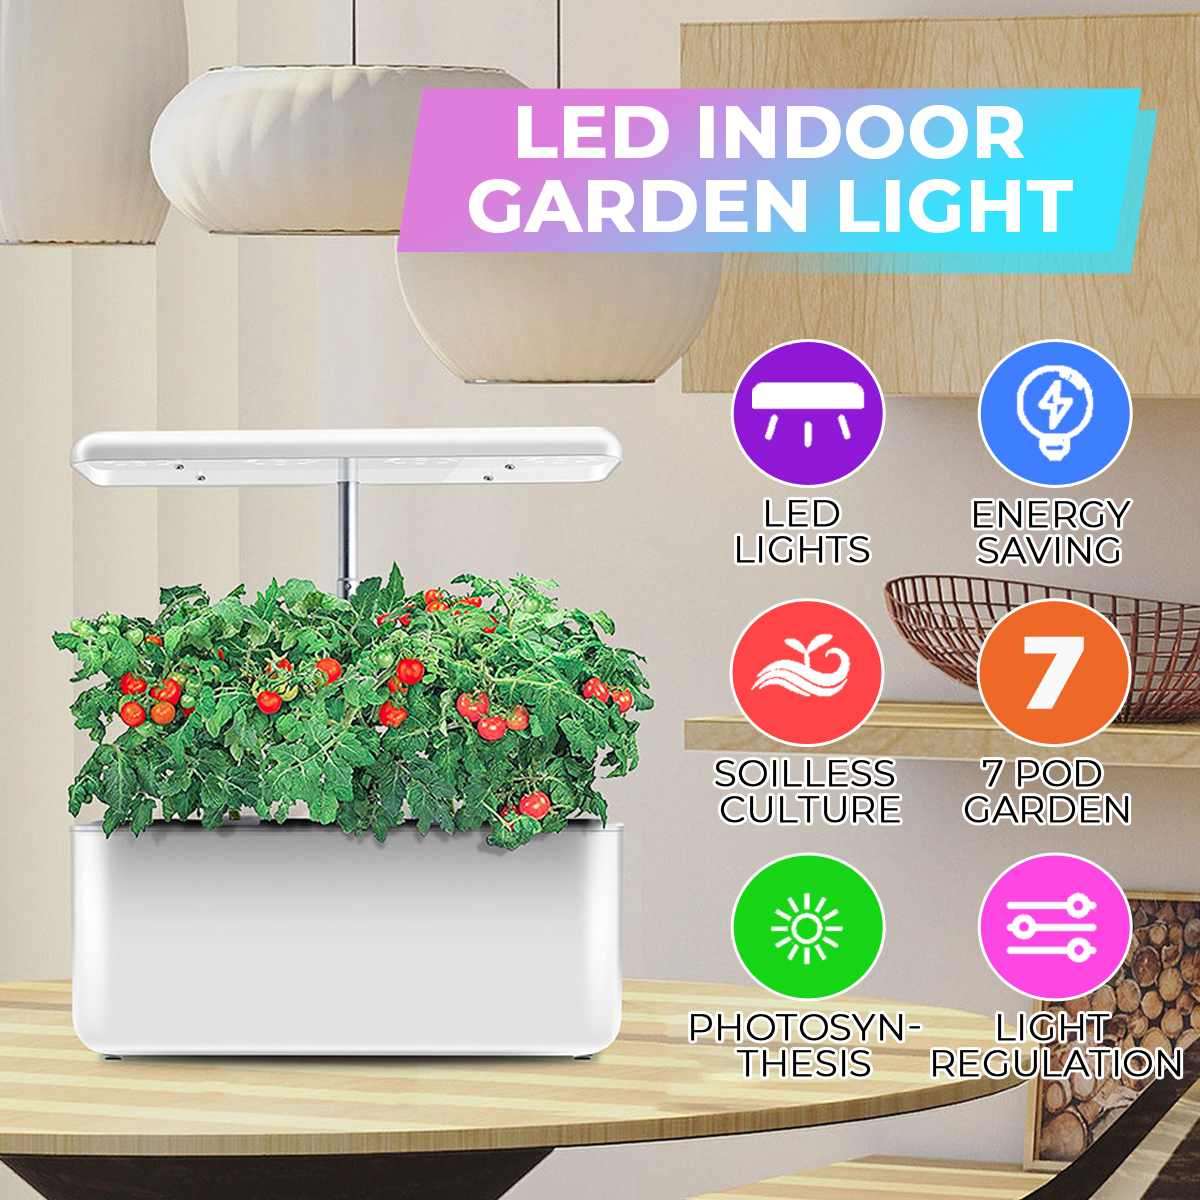 Ecoo Grower Indoor Plant Hydroponics Grow light Soilless Cultivation Plant Grow Light With Water-cycle System For Plant Nursery